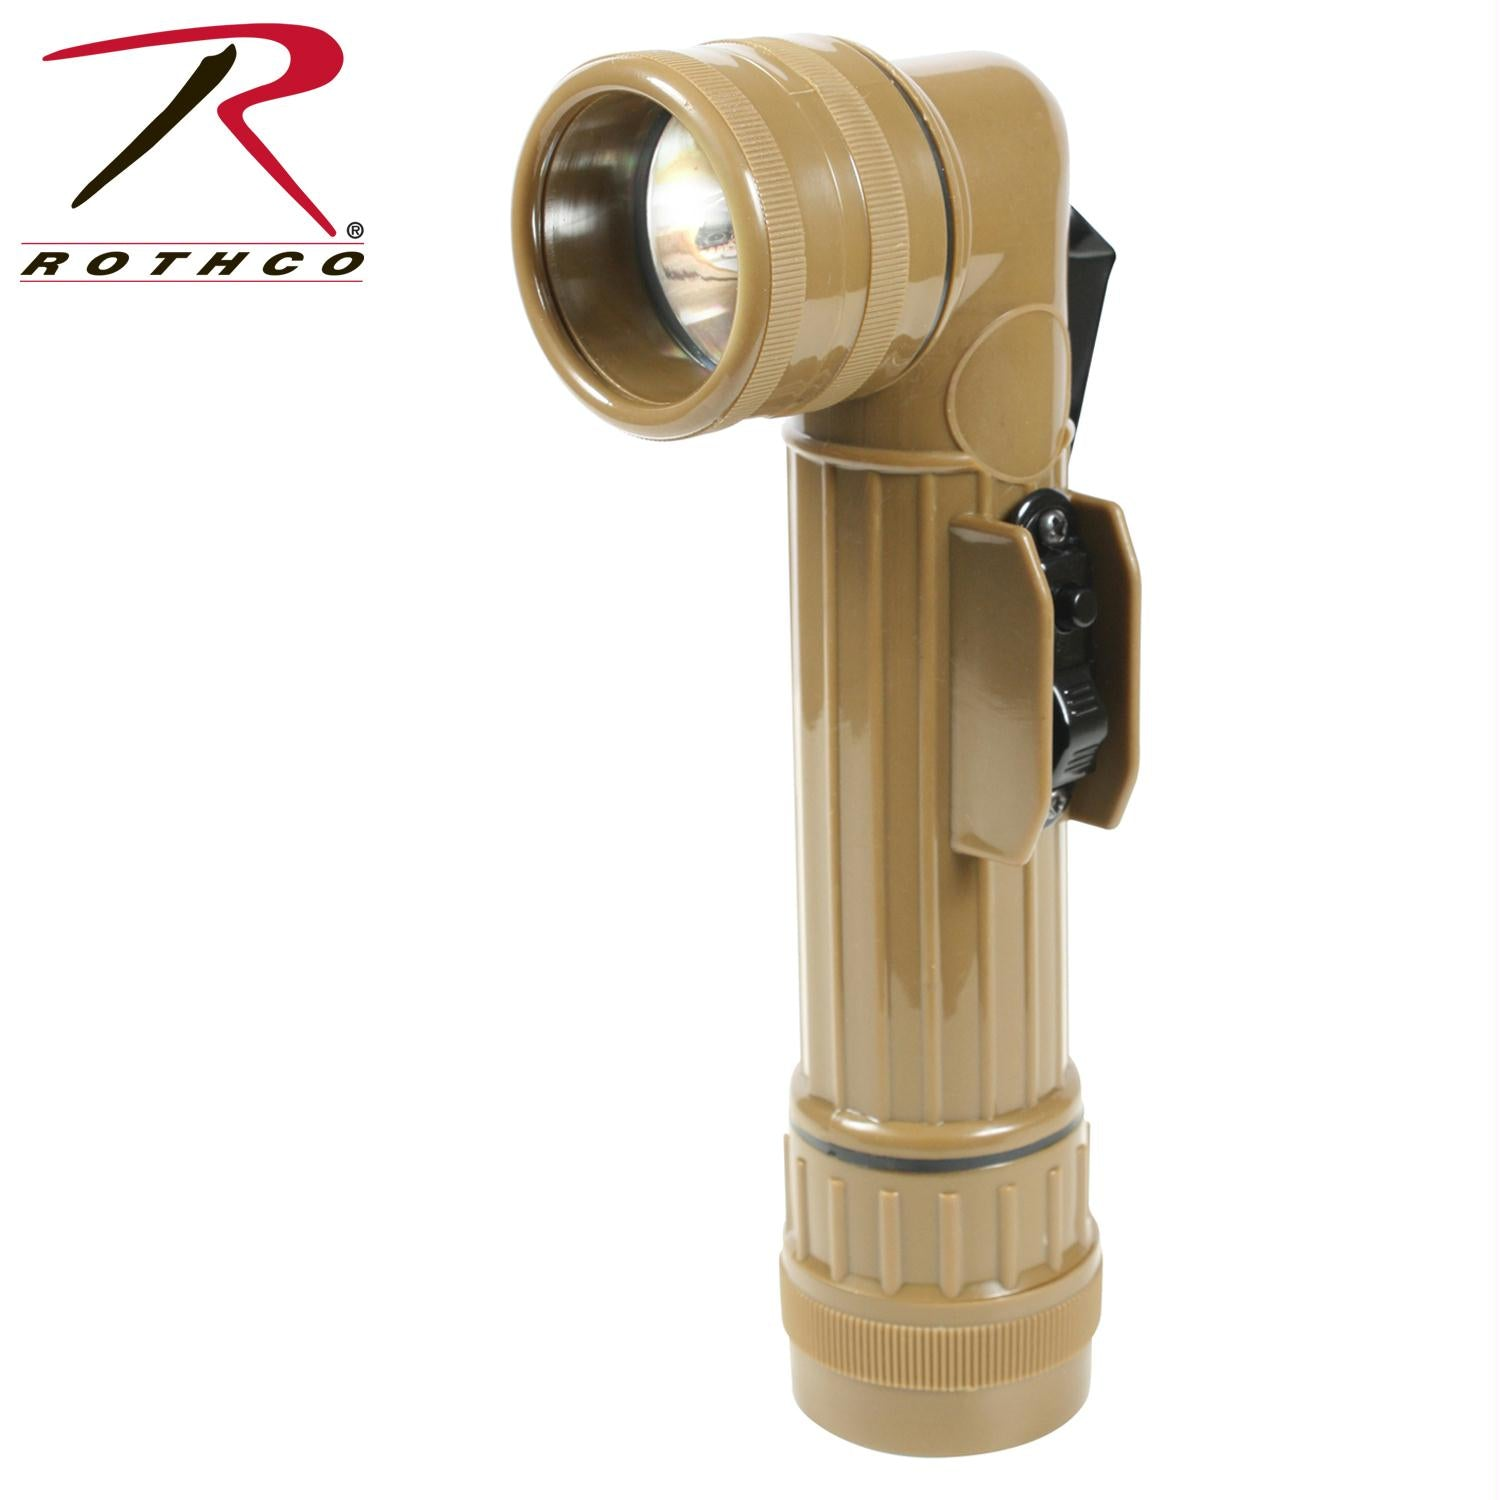 Rothco G.I. Type D-Cell Flashlights - Coyote Brown